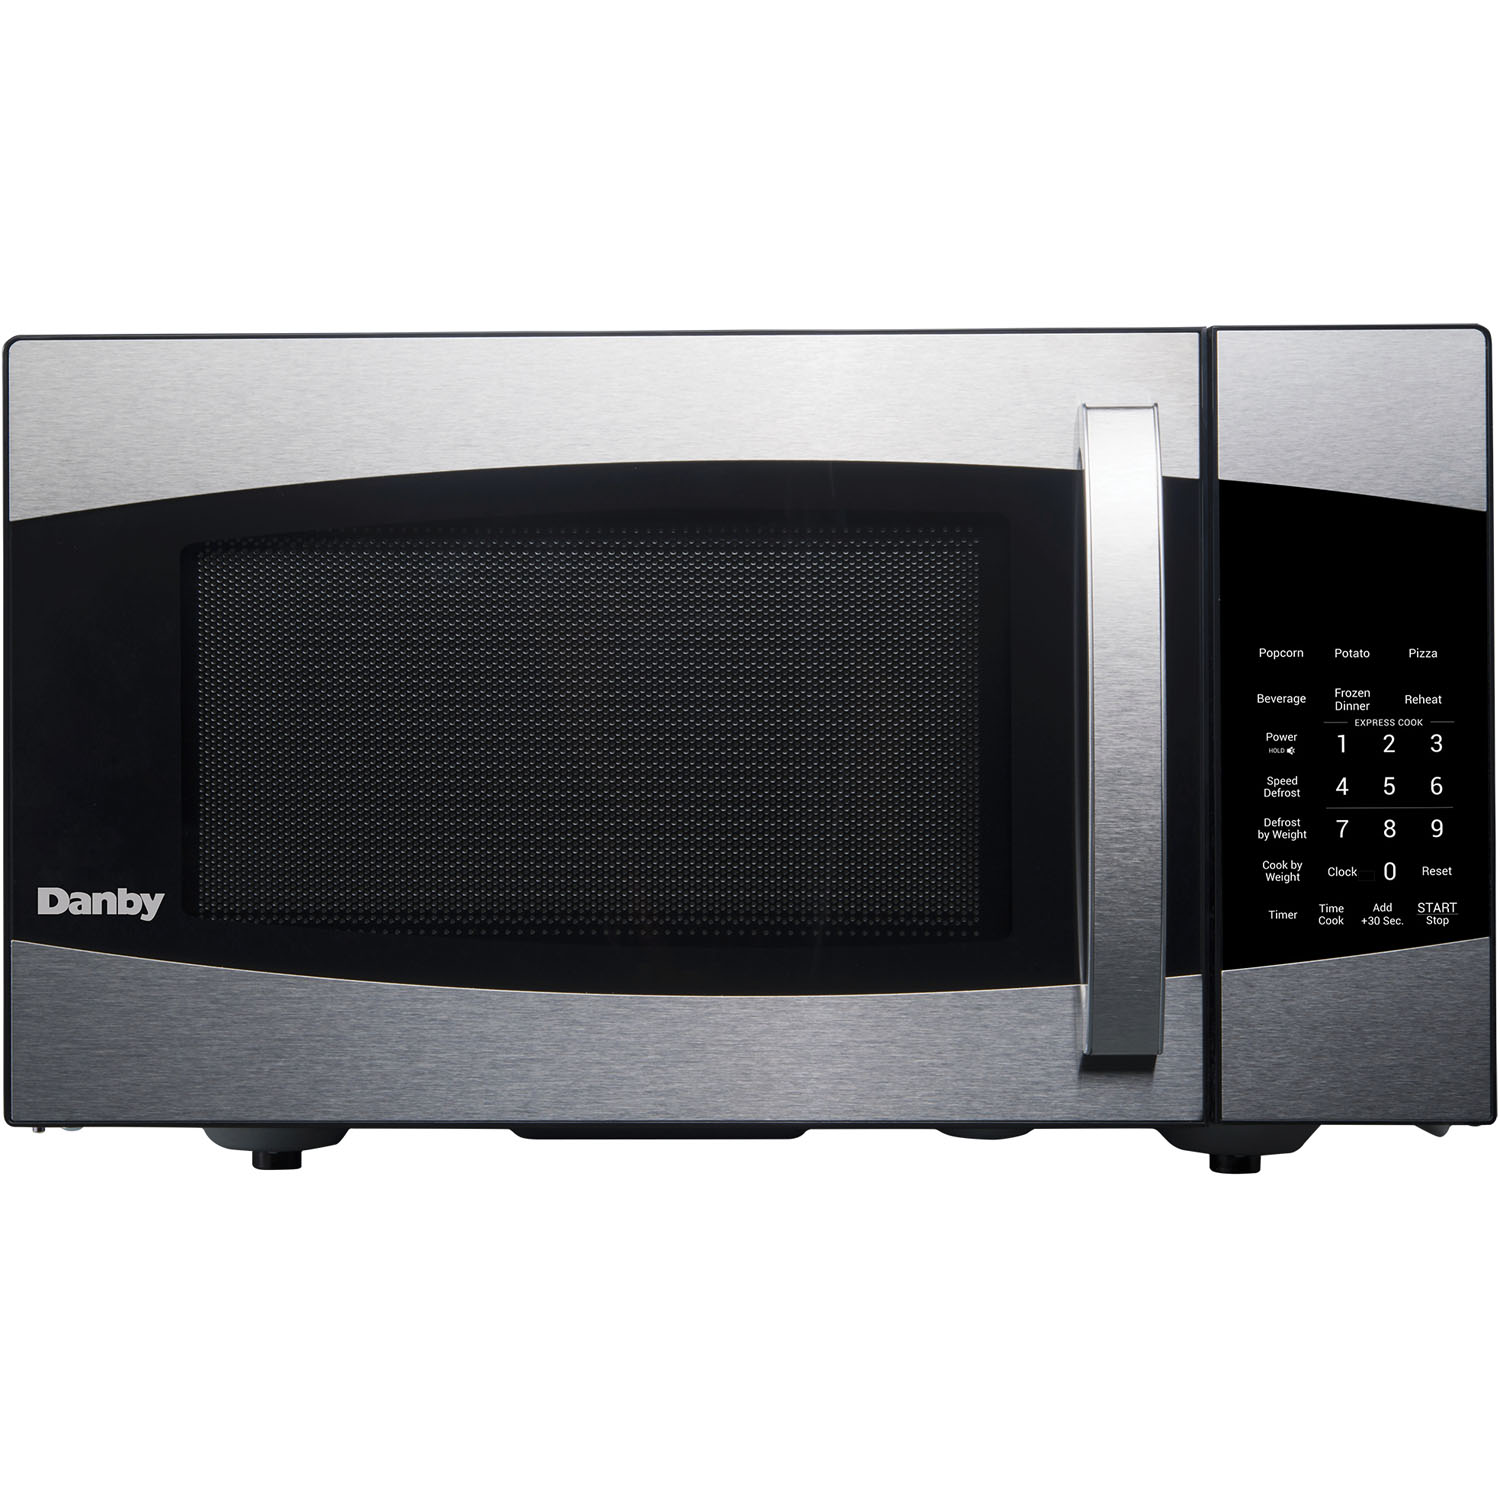 Danby 0.9-Cu. Ft. 900W Countertop Microwave Oven in Stainless/Black